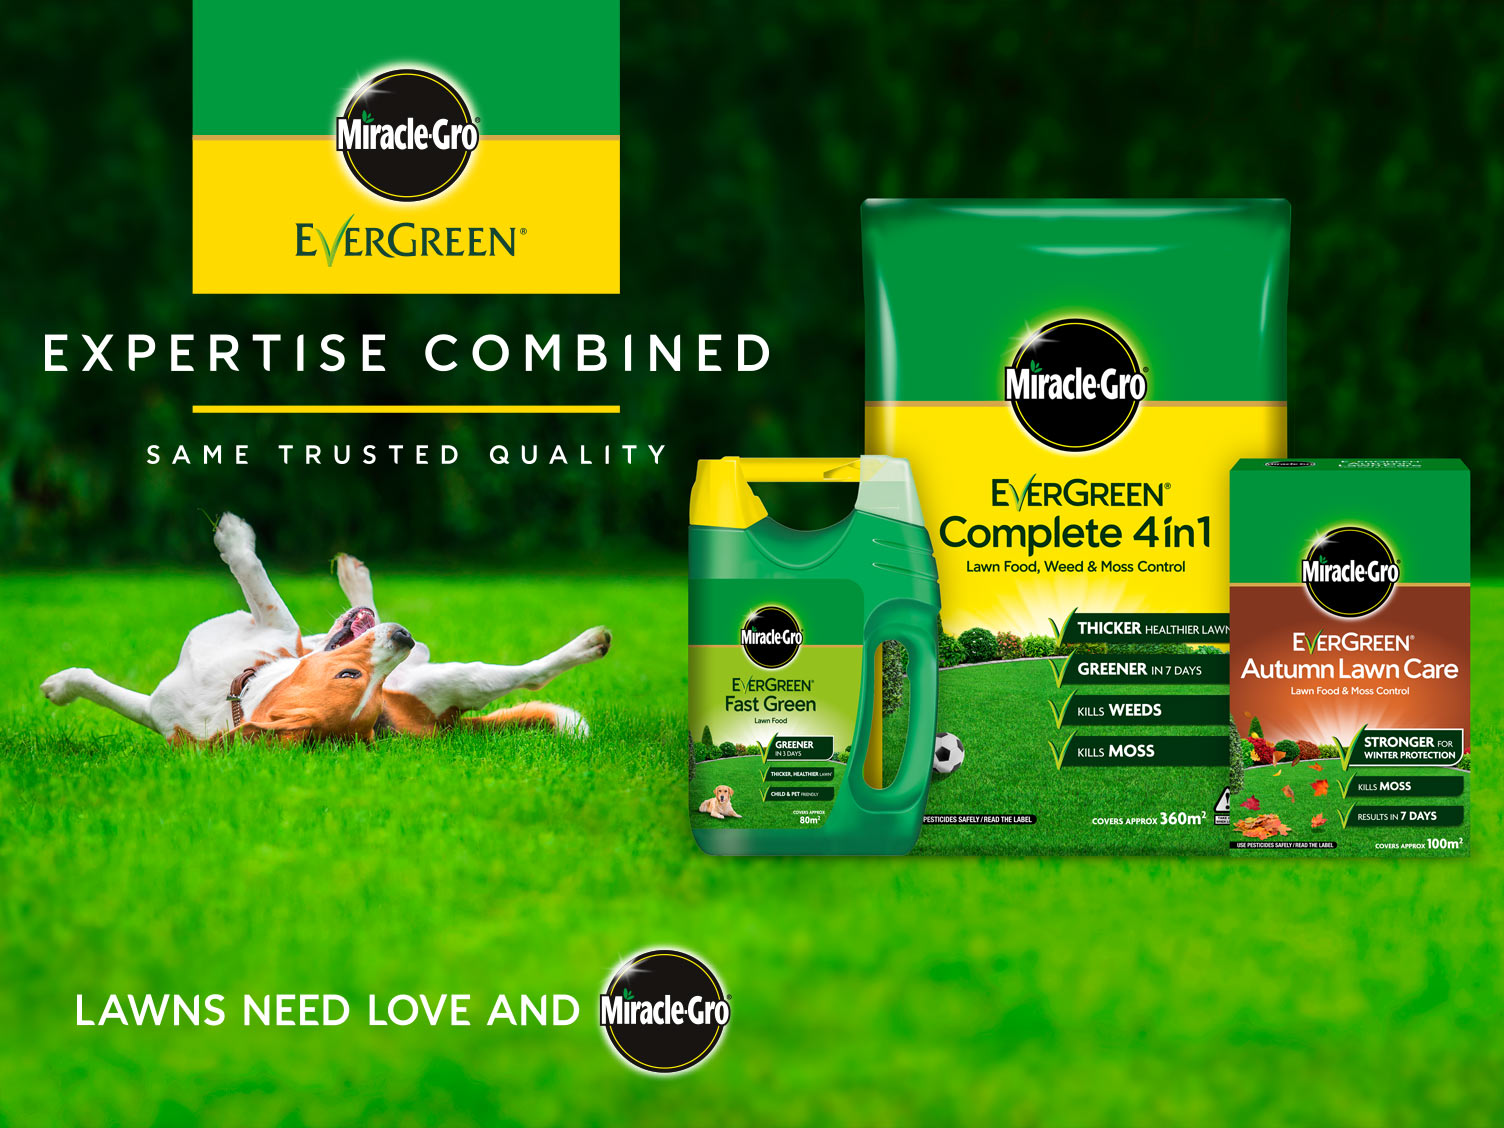 Miracle-Gro® EverGreen® - Expertise Combined